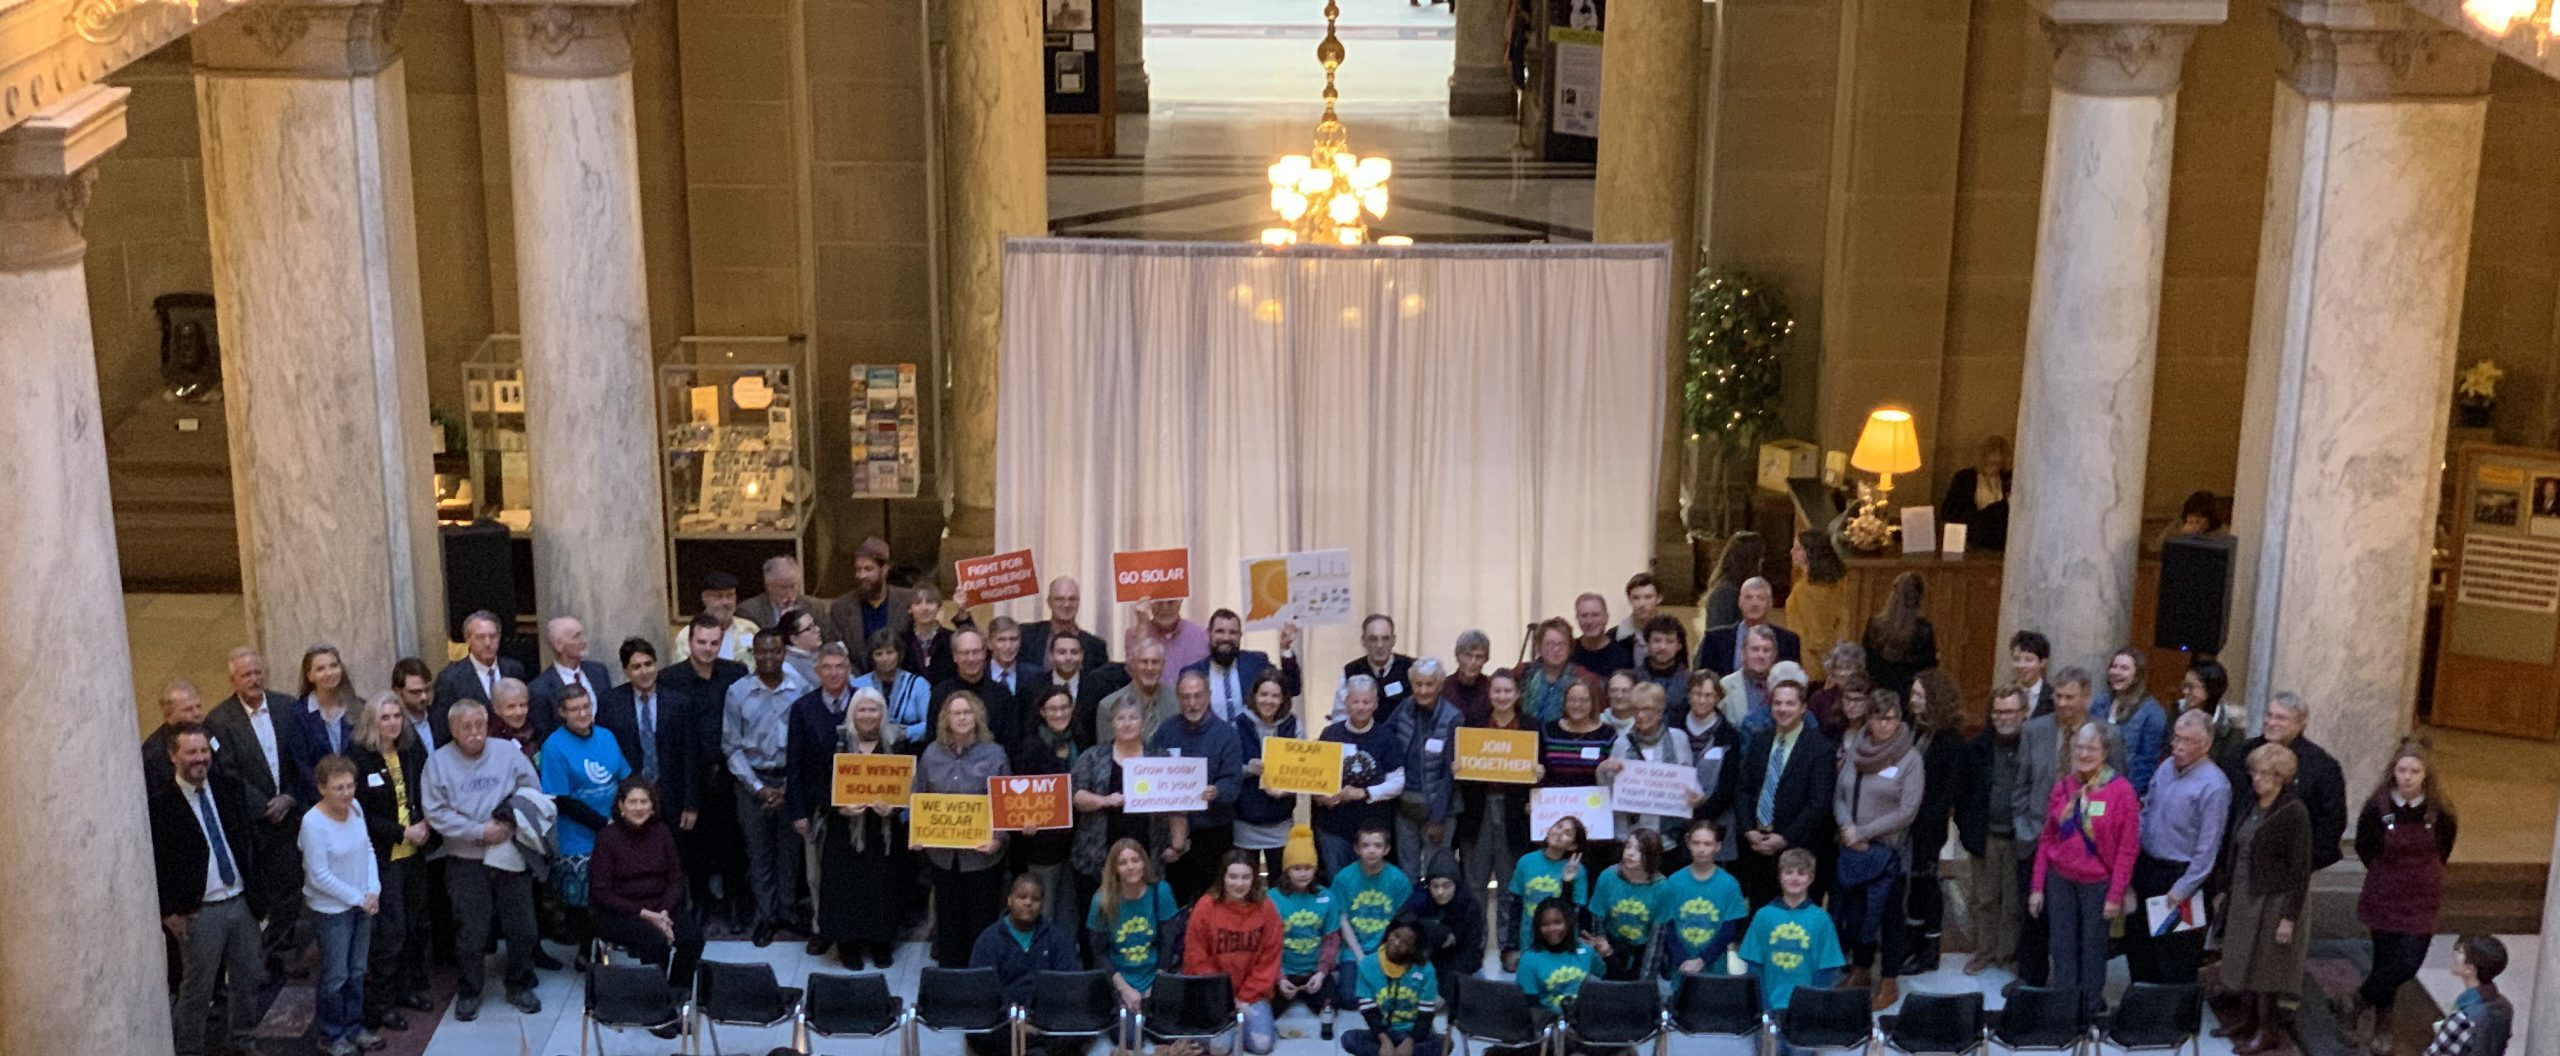 Hoosiers from around the state gathered at the Indiana Statehouse for the 2020 Renewable Energy Day